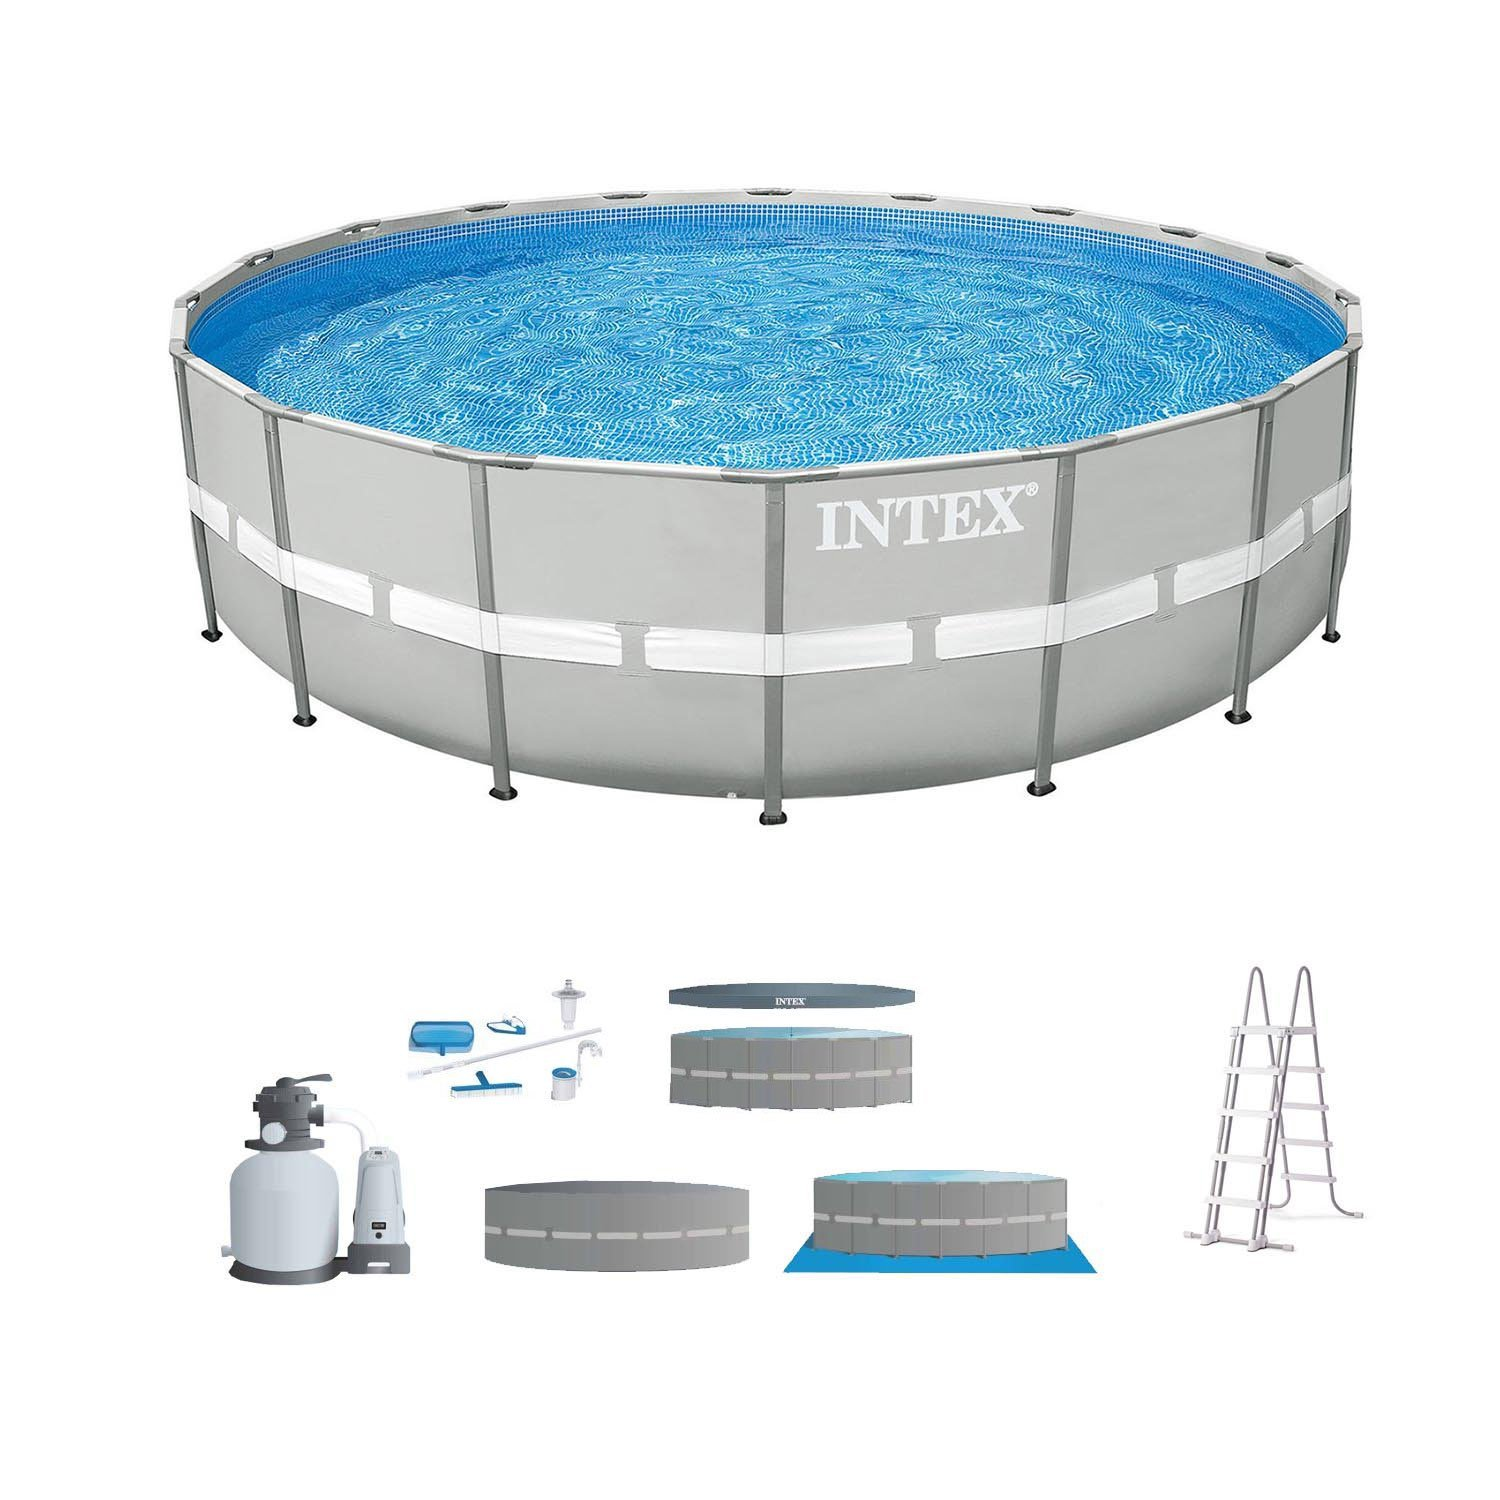 Intex 24 X 52 Quot Steel Ultra Frame Round Above Ground